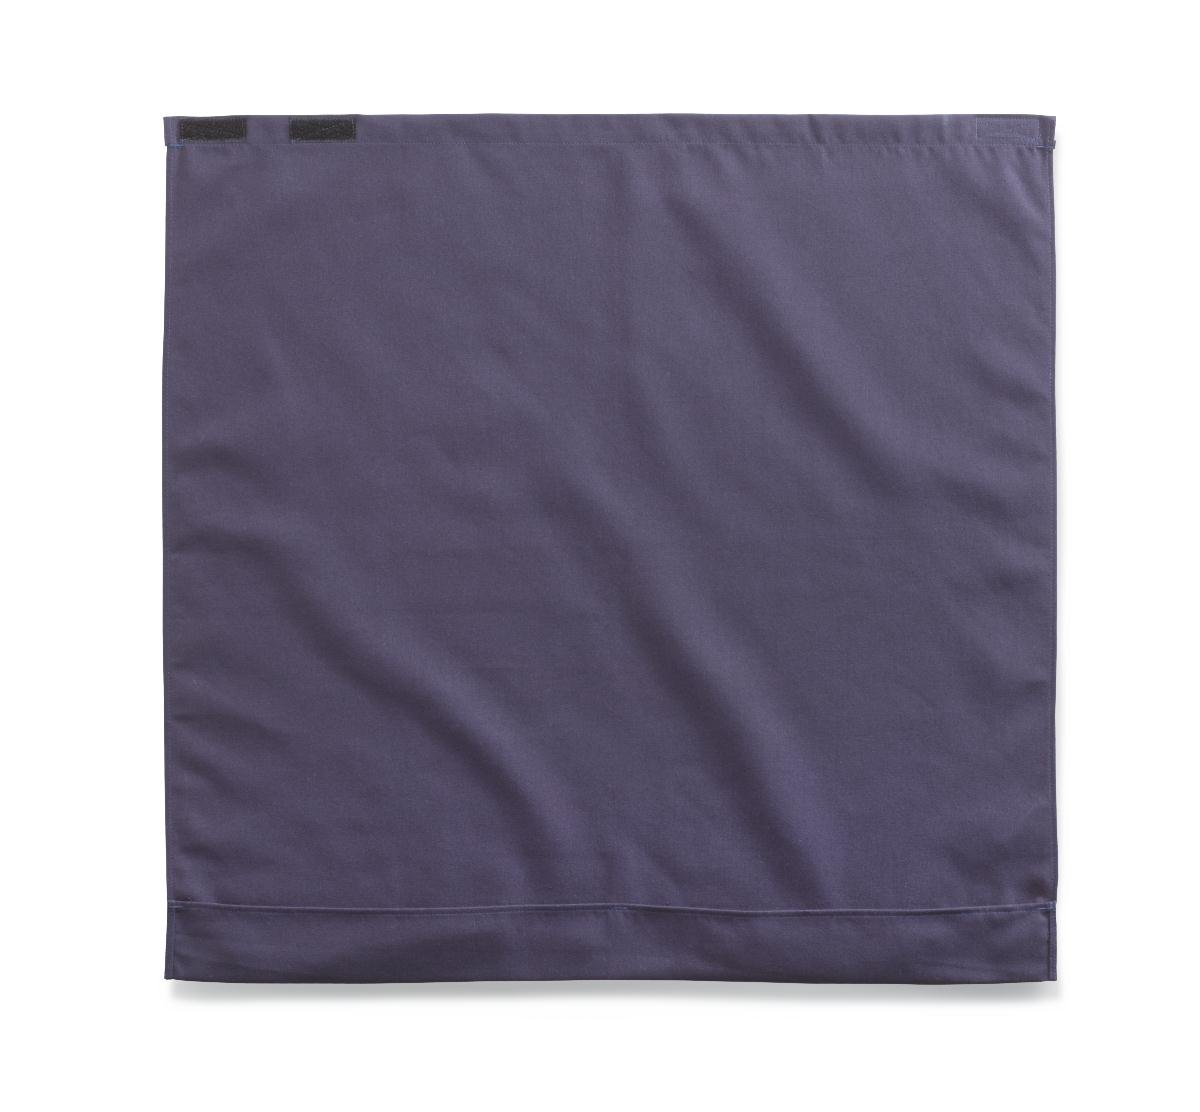 Medline MDT014117NAVY Classic Style Dignity Napkin with Hook-and-Loop Closure, 27.5'' x 27'', Navy Blue (Pack of 24)